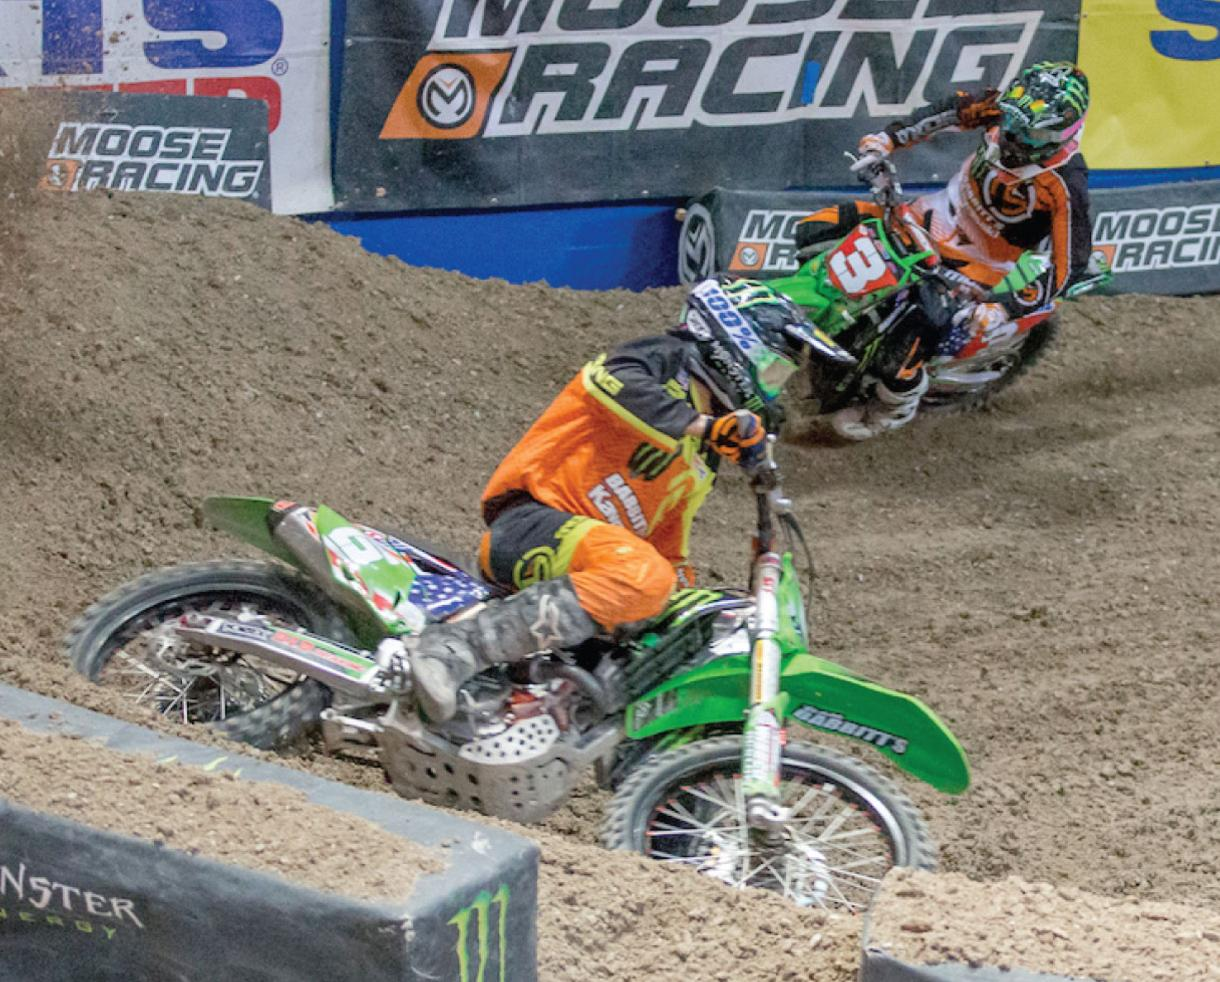 $10 for AMSOIL Arenacross at Royal Farms Arena in Baltimore (Up to 50% Savings)